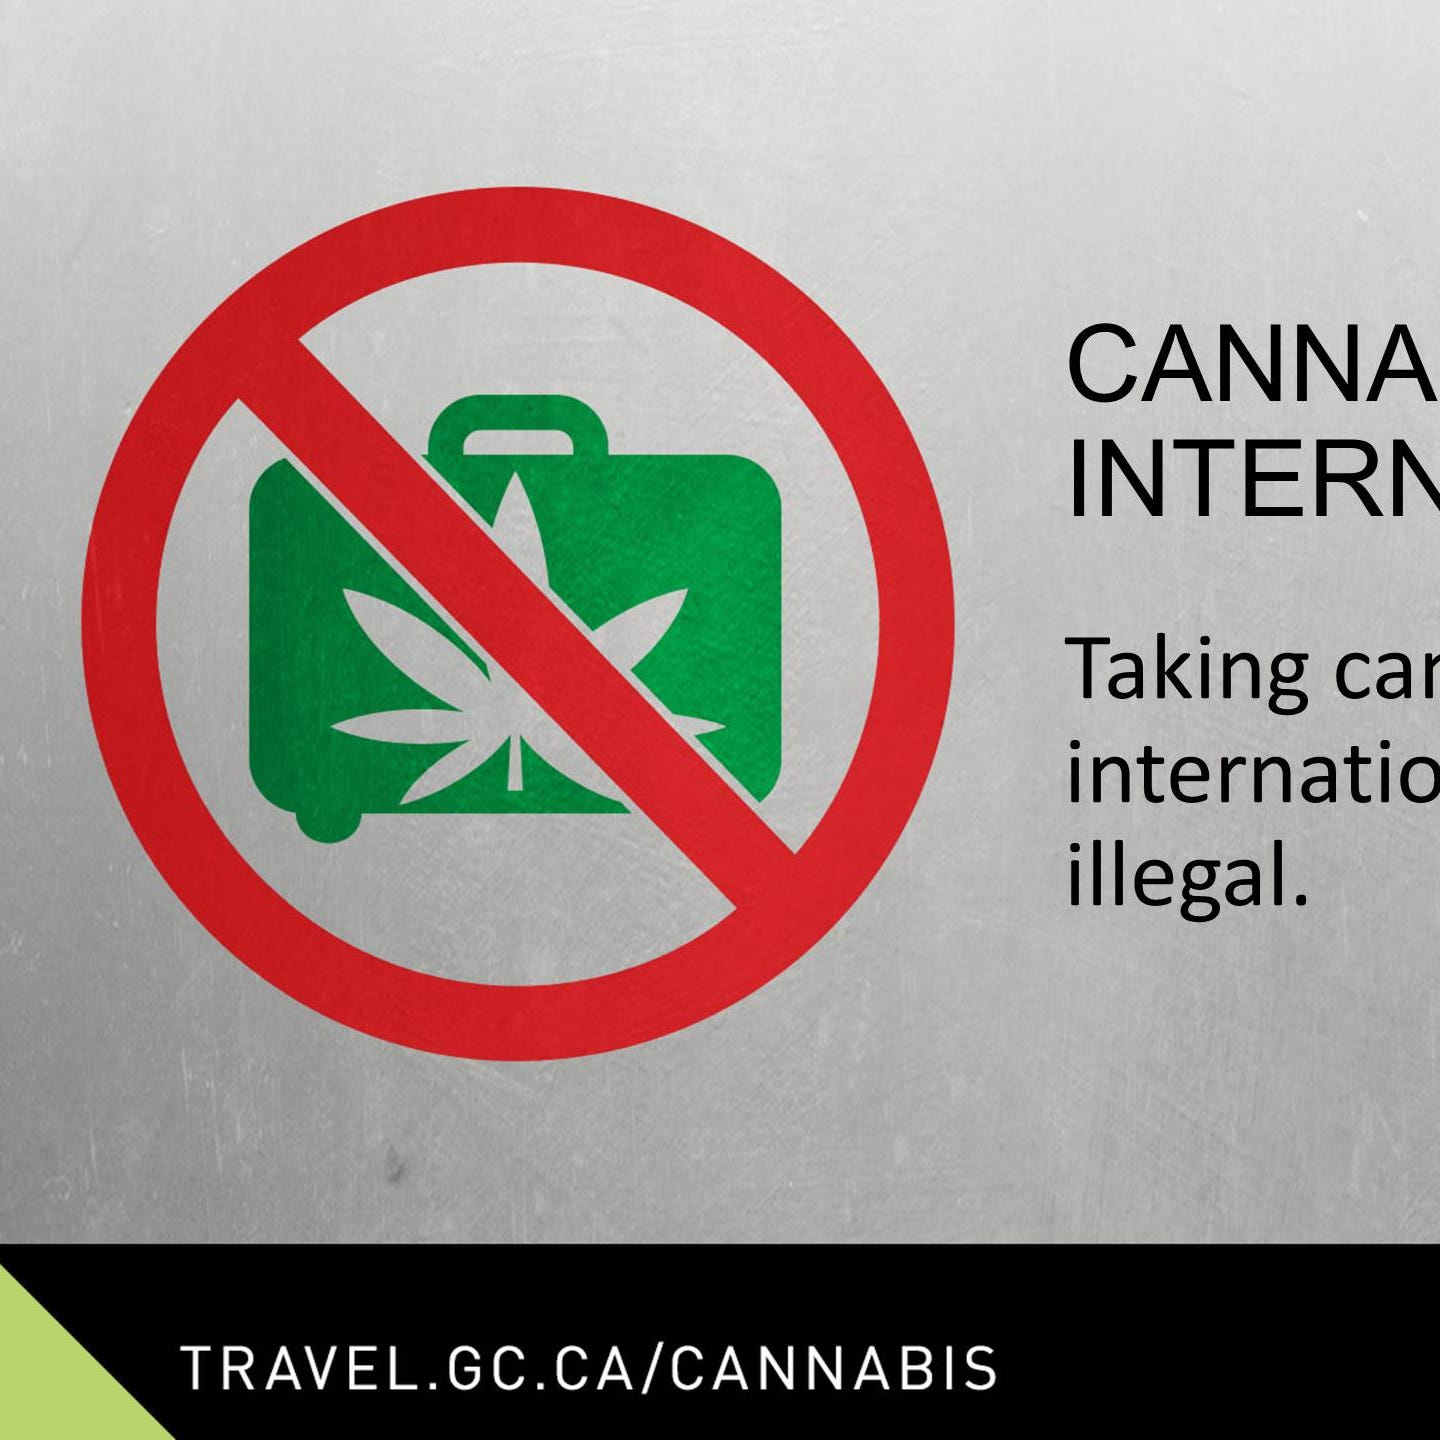 This border sign produced by the Canadian government warns travelers not to take cannabis across Canada's border.